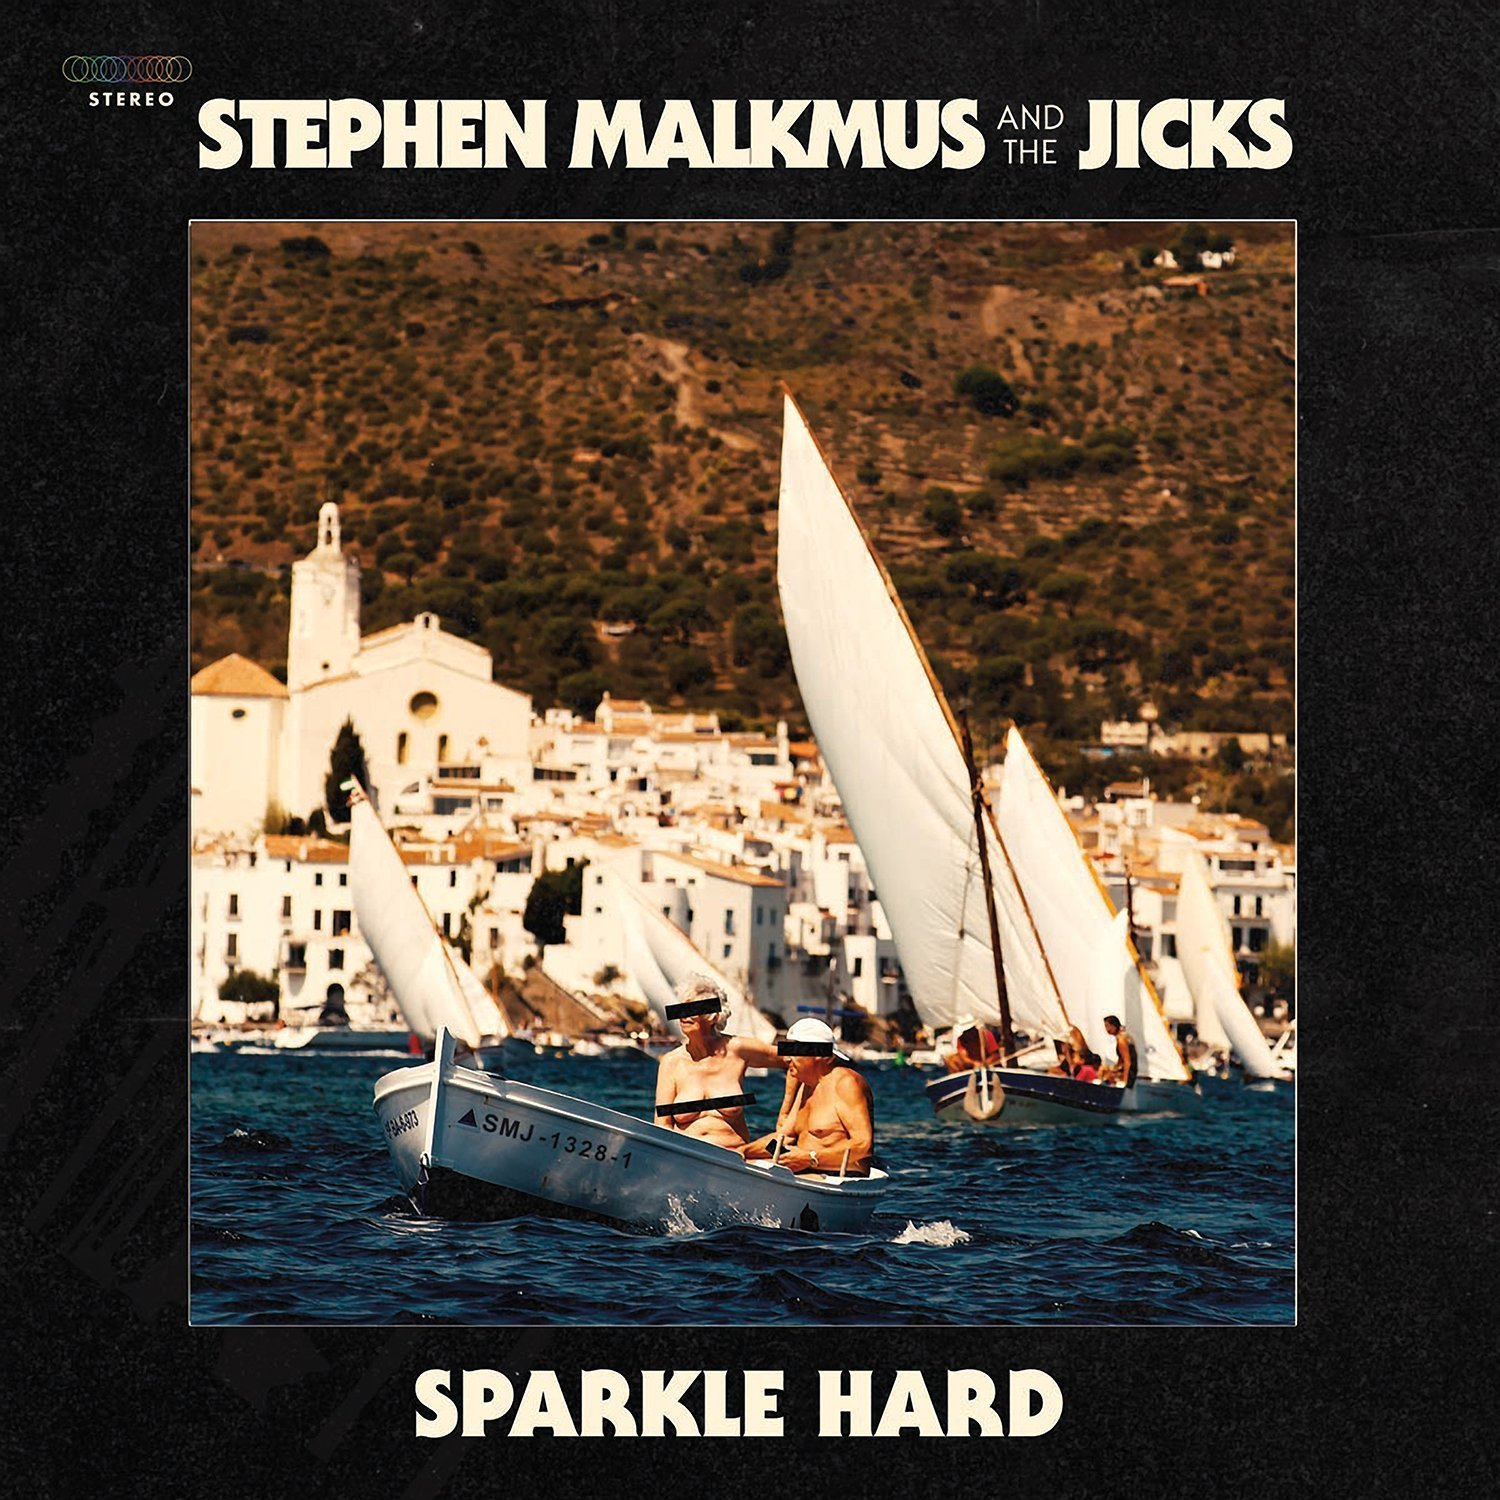 Stephen Malkmus and the Jicks, Sparkle Hard